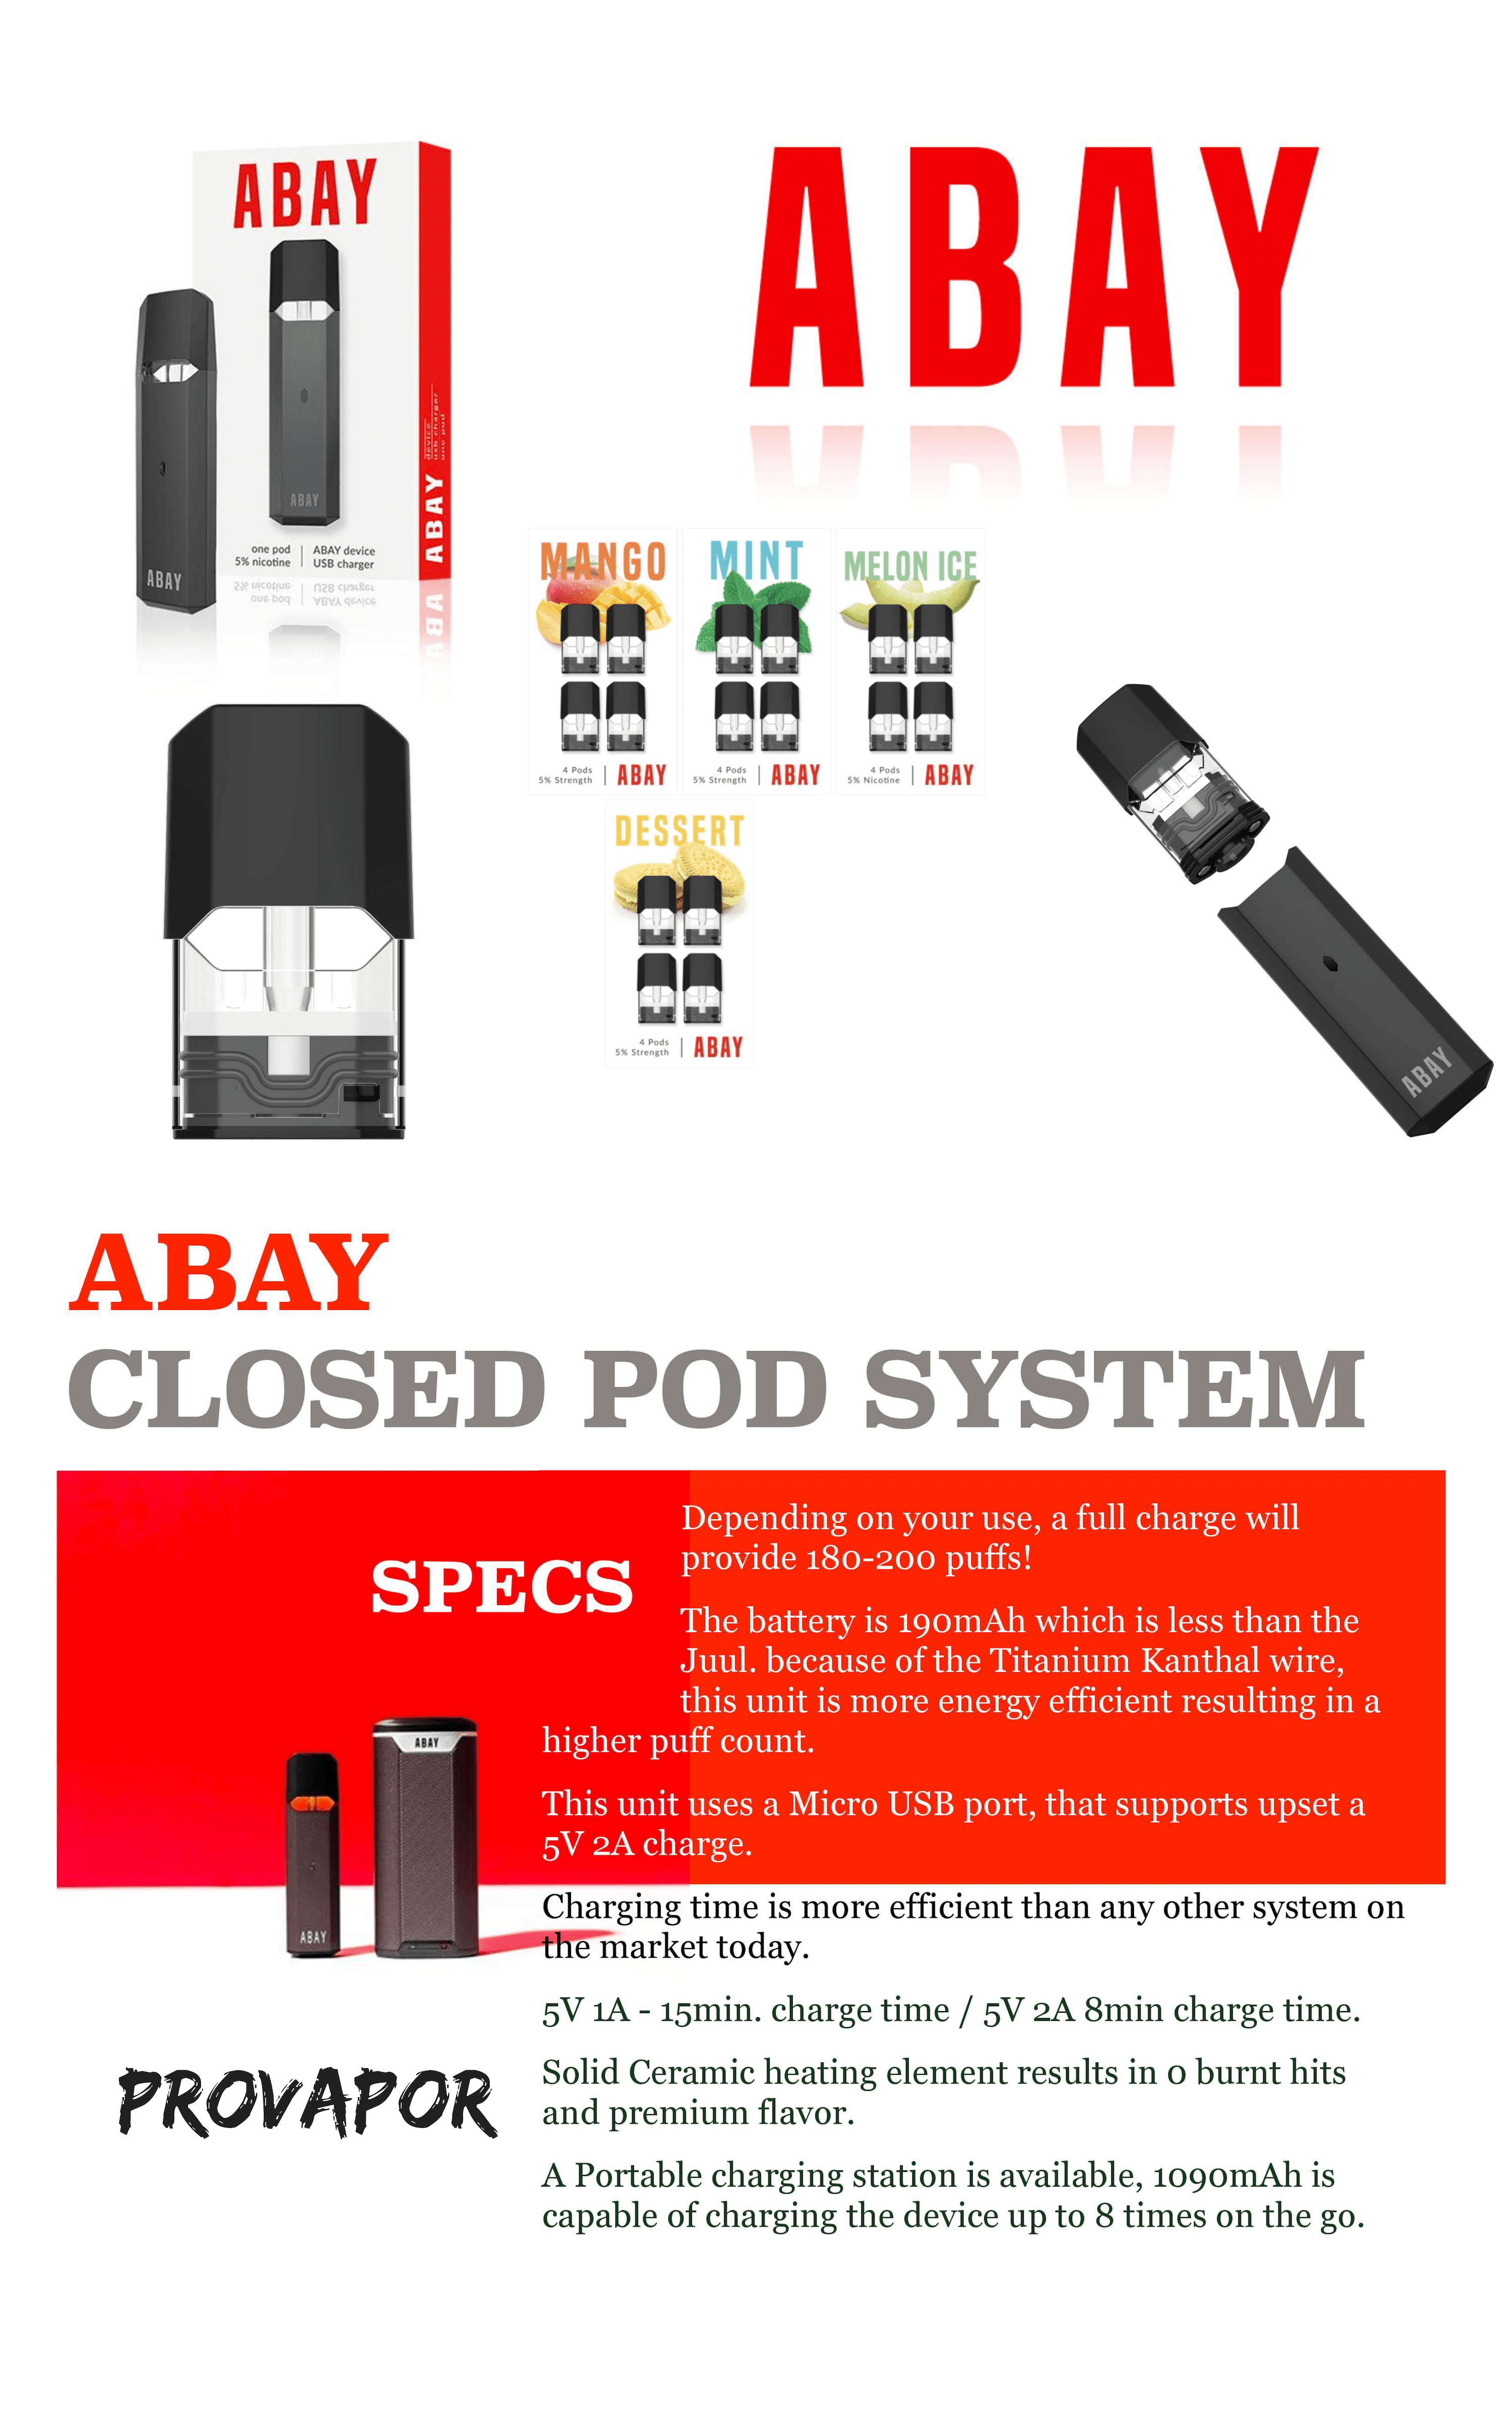 Abay vape pen starter kit information including the specs of the device, the four different flavors, the pods, and the device itself as well as the box all against a white backgound.